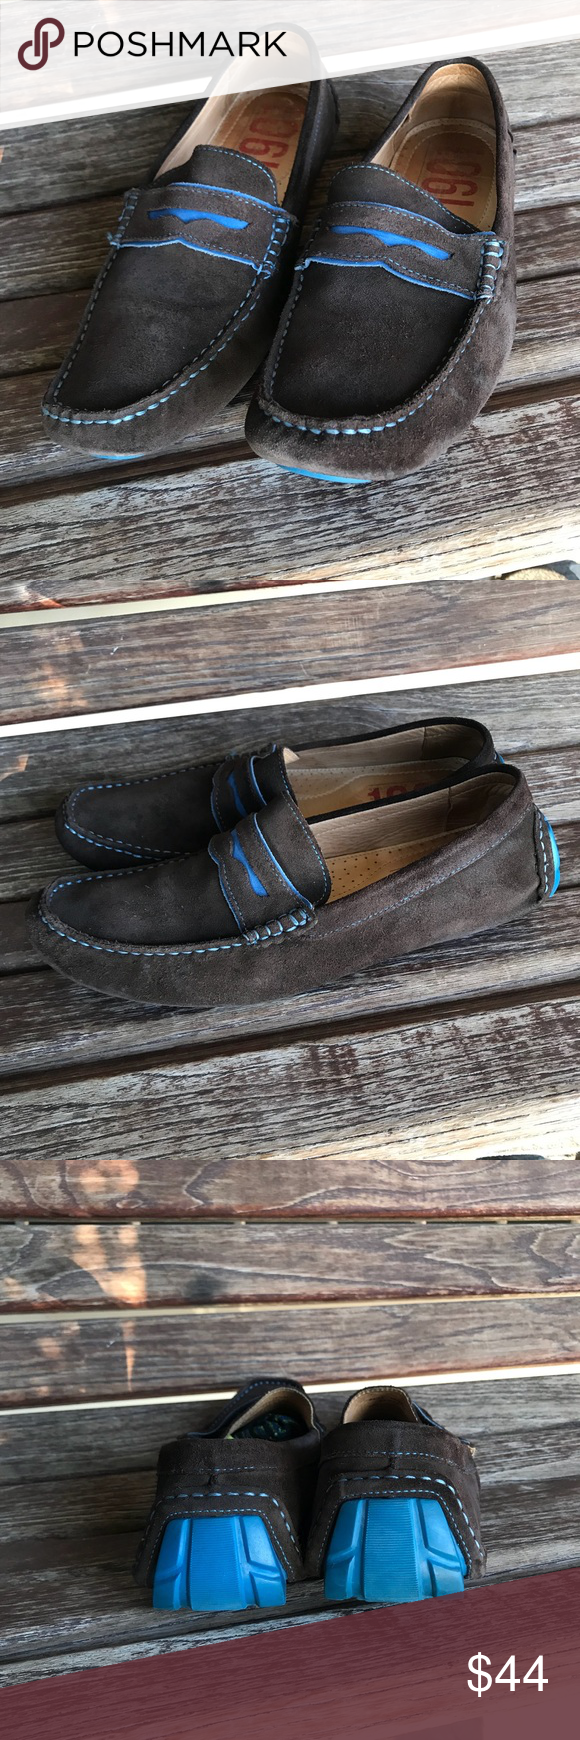 5c75dabfedf 1901 Penny Loafers Men s size 10.5  M71513  Gently used in great  condition!  -Brown Suede with blue trim -Men s size 10.5 -Style  M71513 See  pictures for ...